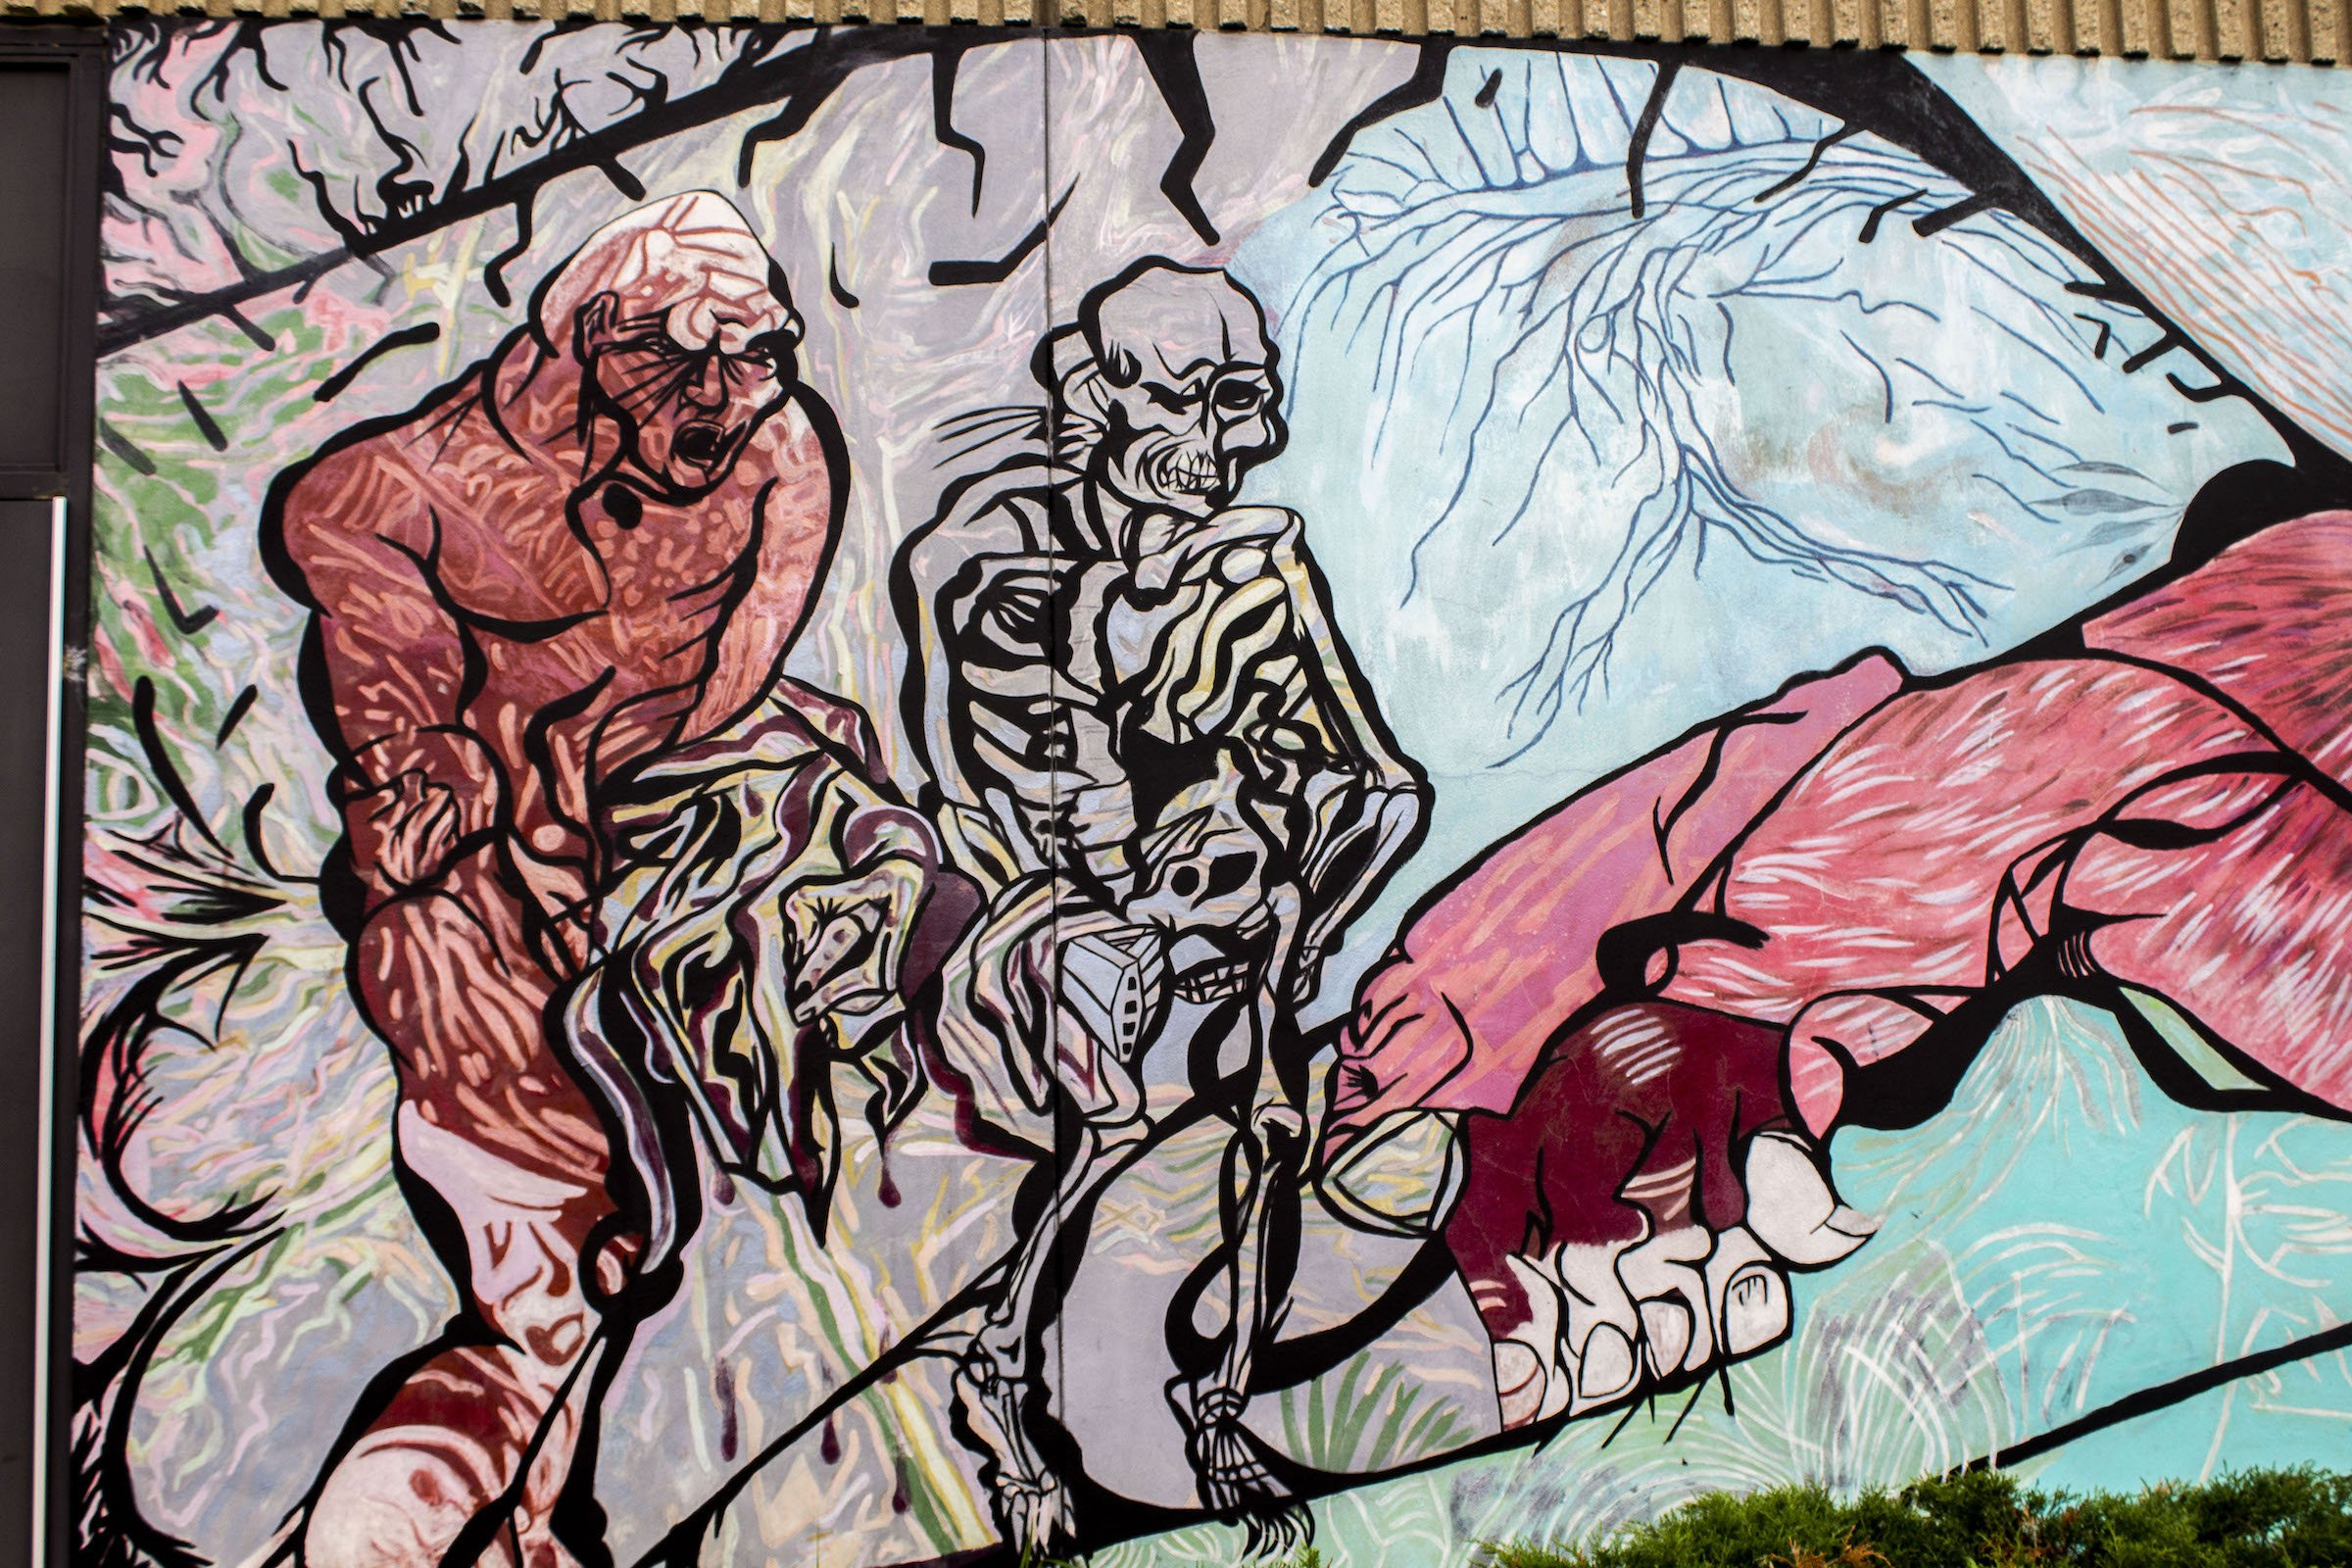 Here is another part of the mural that features a skeletal and flaming red figure intertwined. The skeleton on the right is leading the flaming figure who seems so be forcibly holding a concealed gun. These characters represent gangbangers and the st